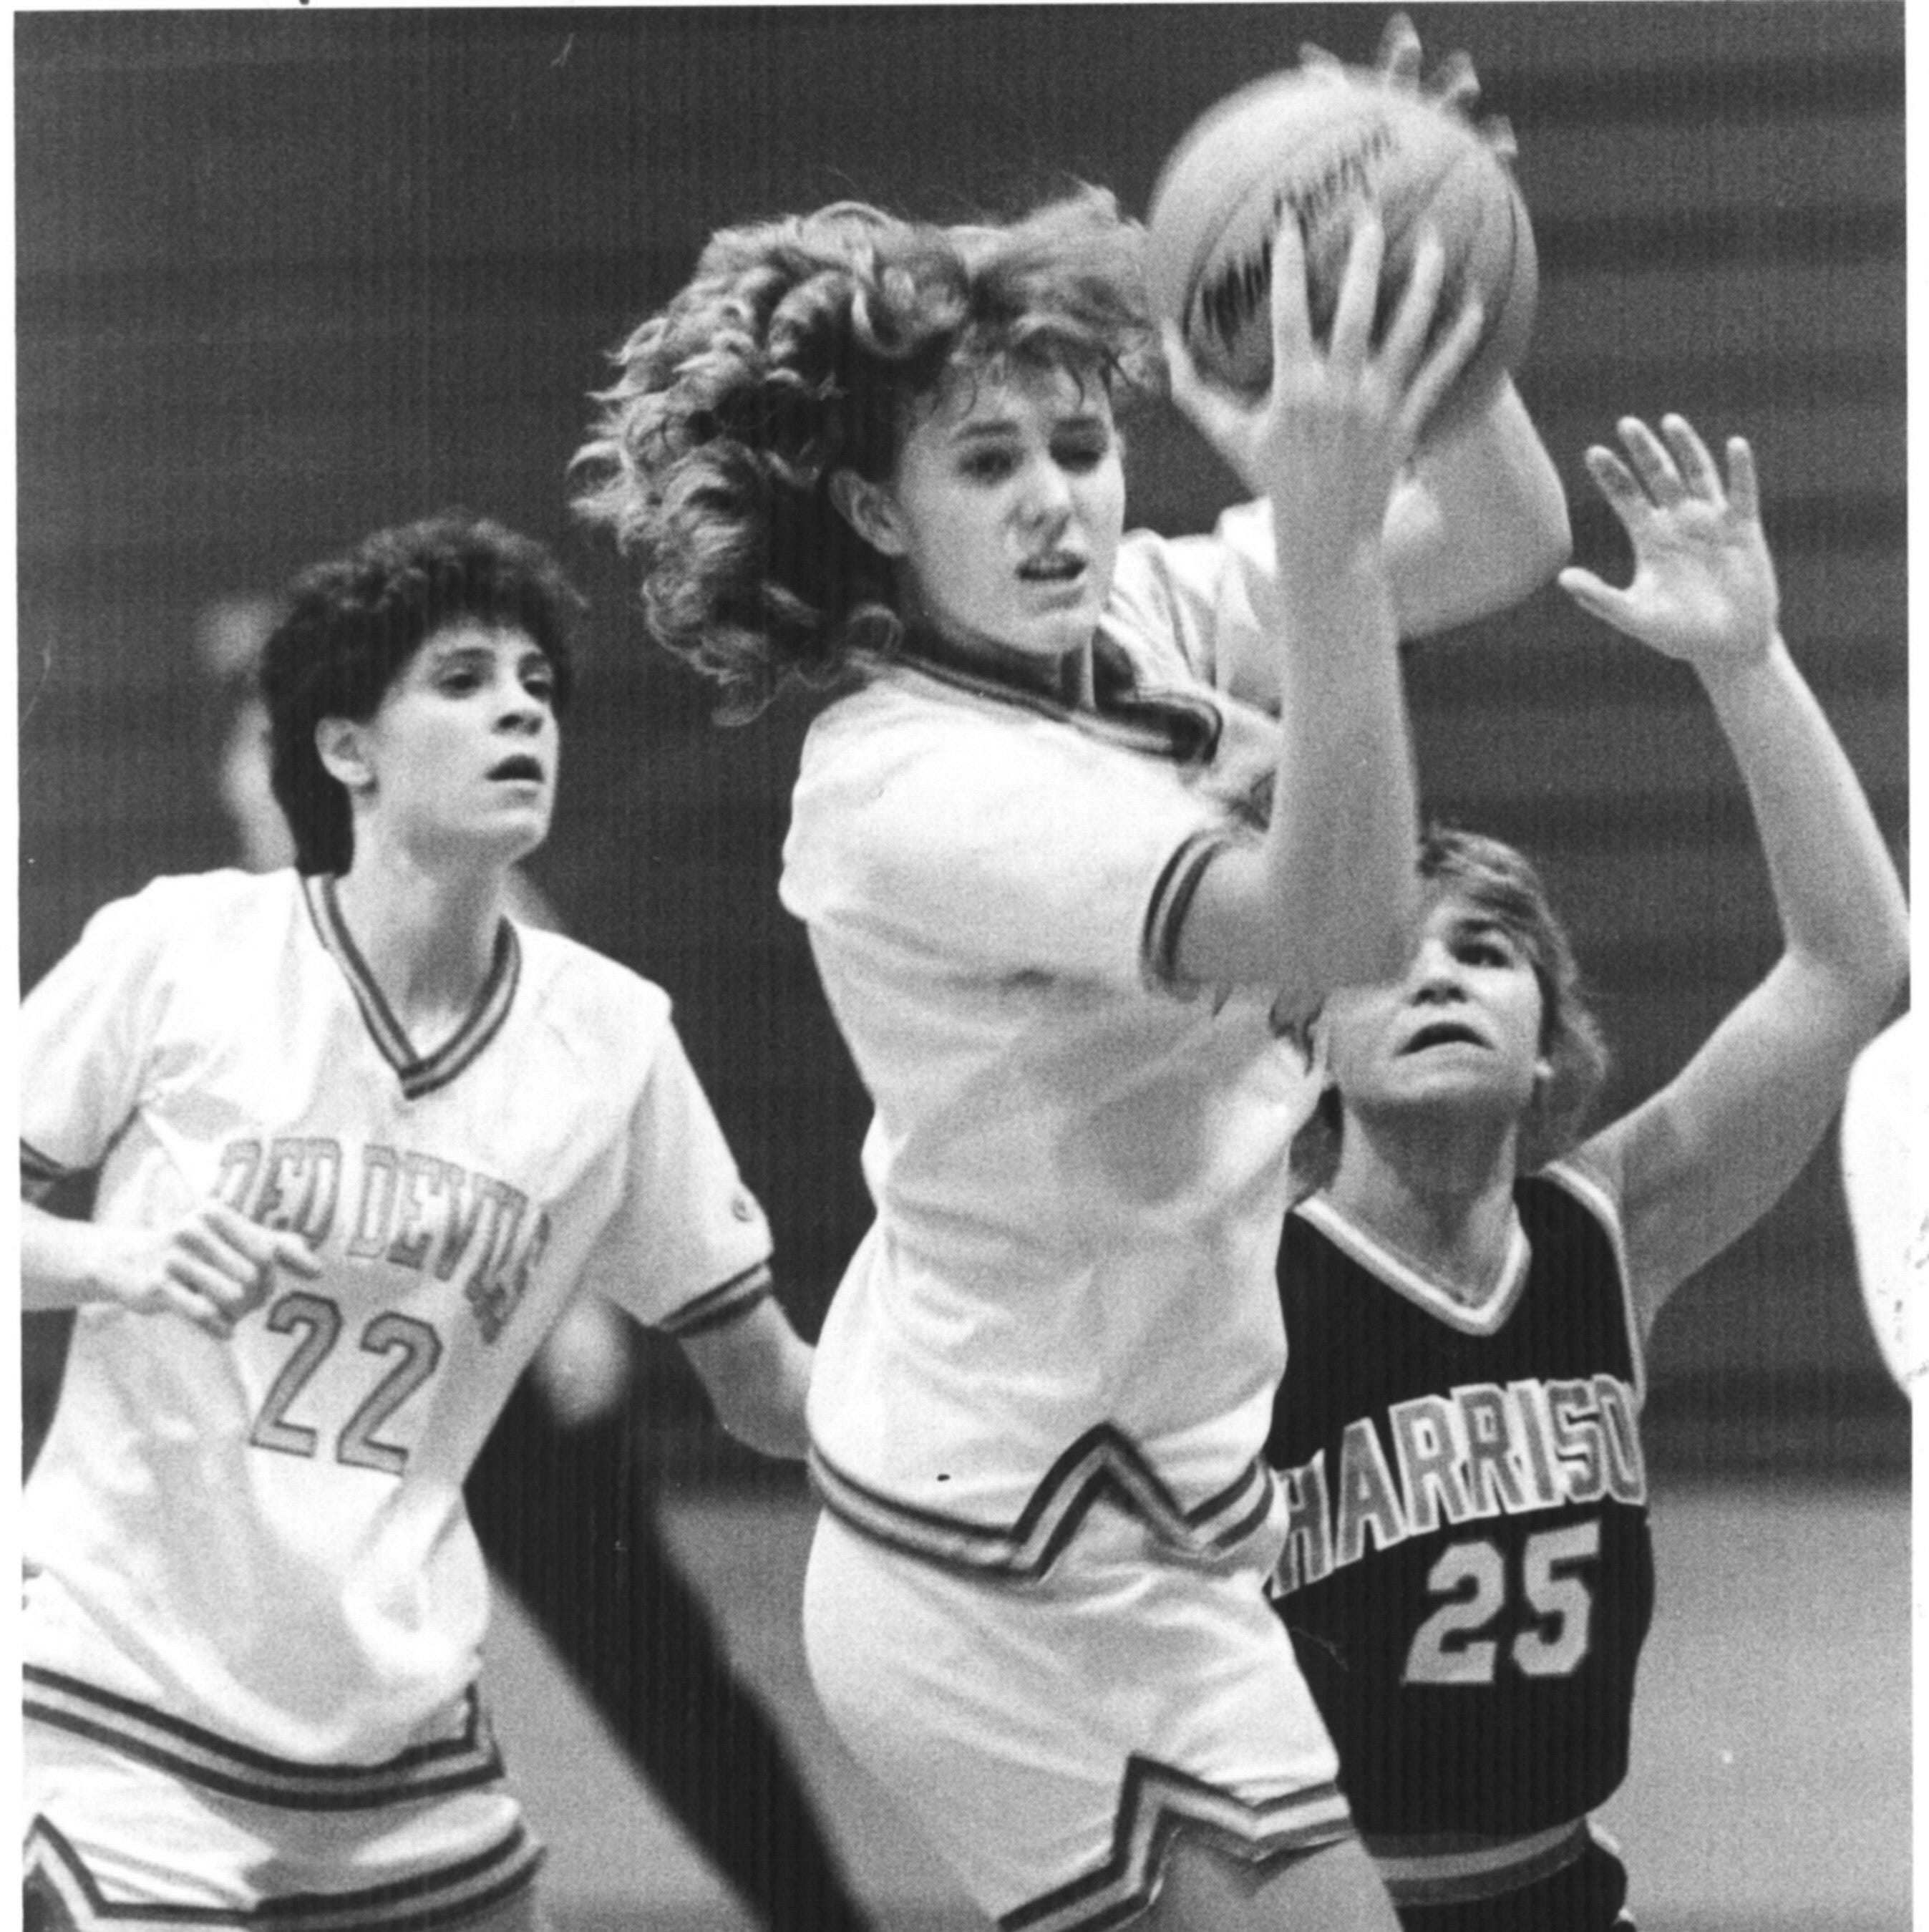 Former West Lafayette basketball standout gets Indiana Hall of Fame call